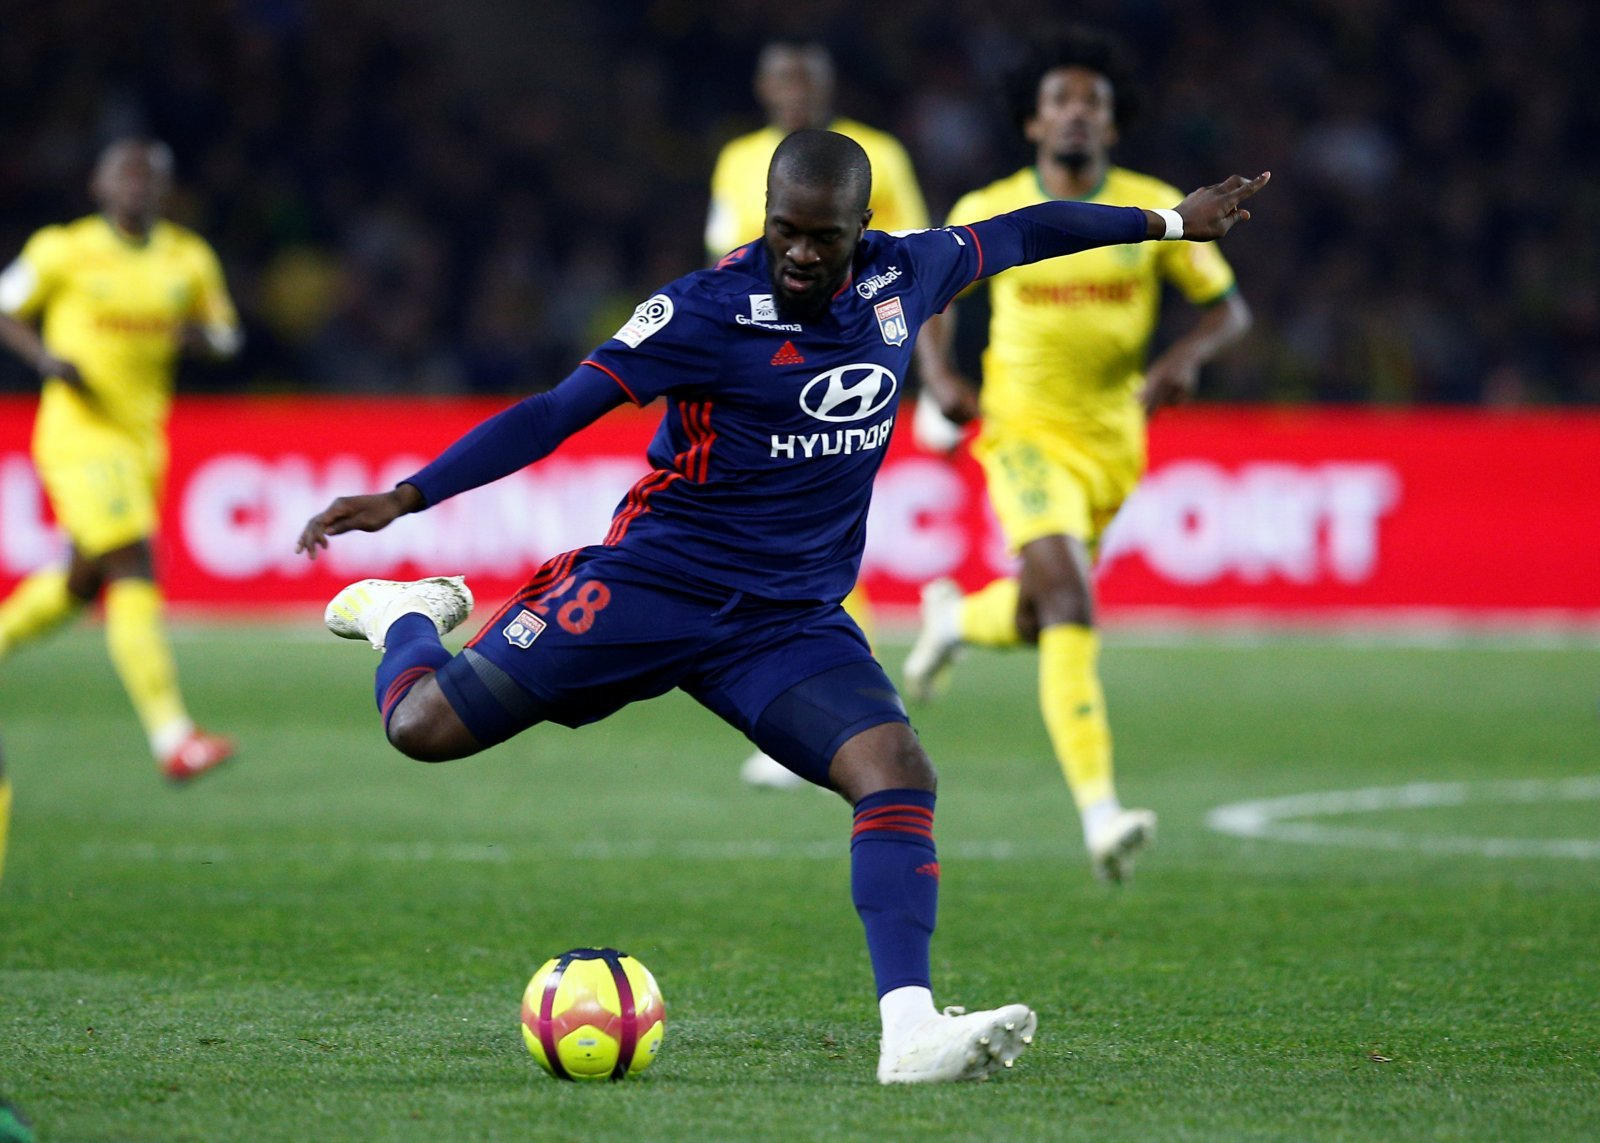 Tottenham fans take to Twitter to call for dream signing Tanguy Ndombele